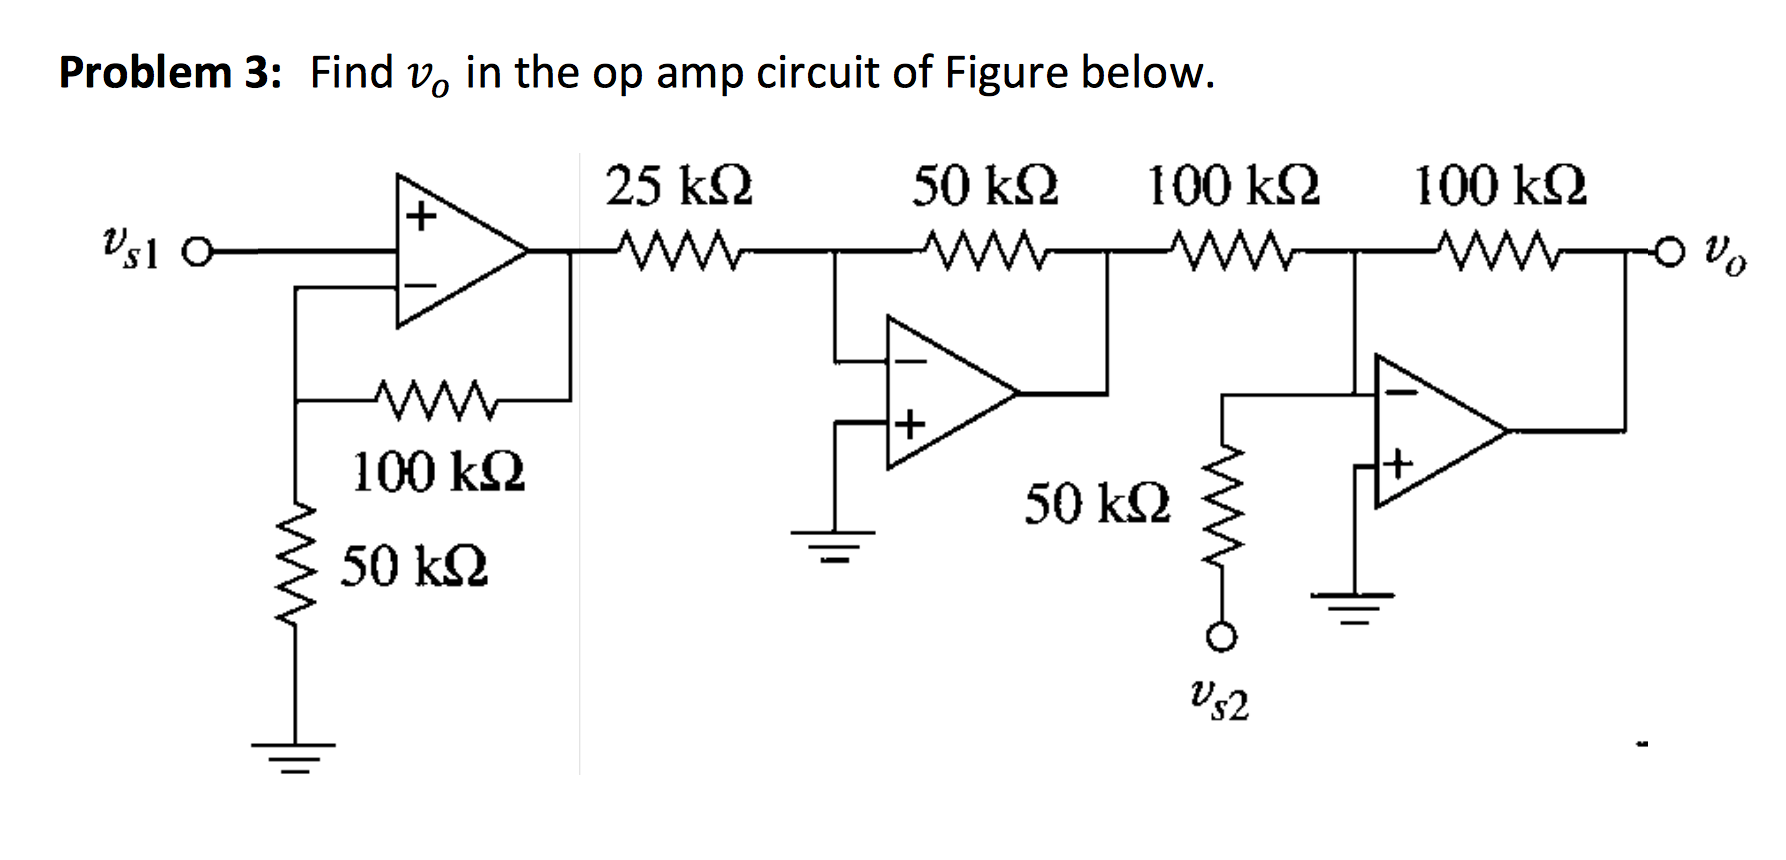 Problem 3: Find vo in the op amp circuit of Figure